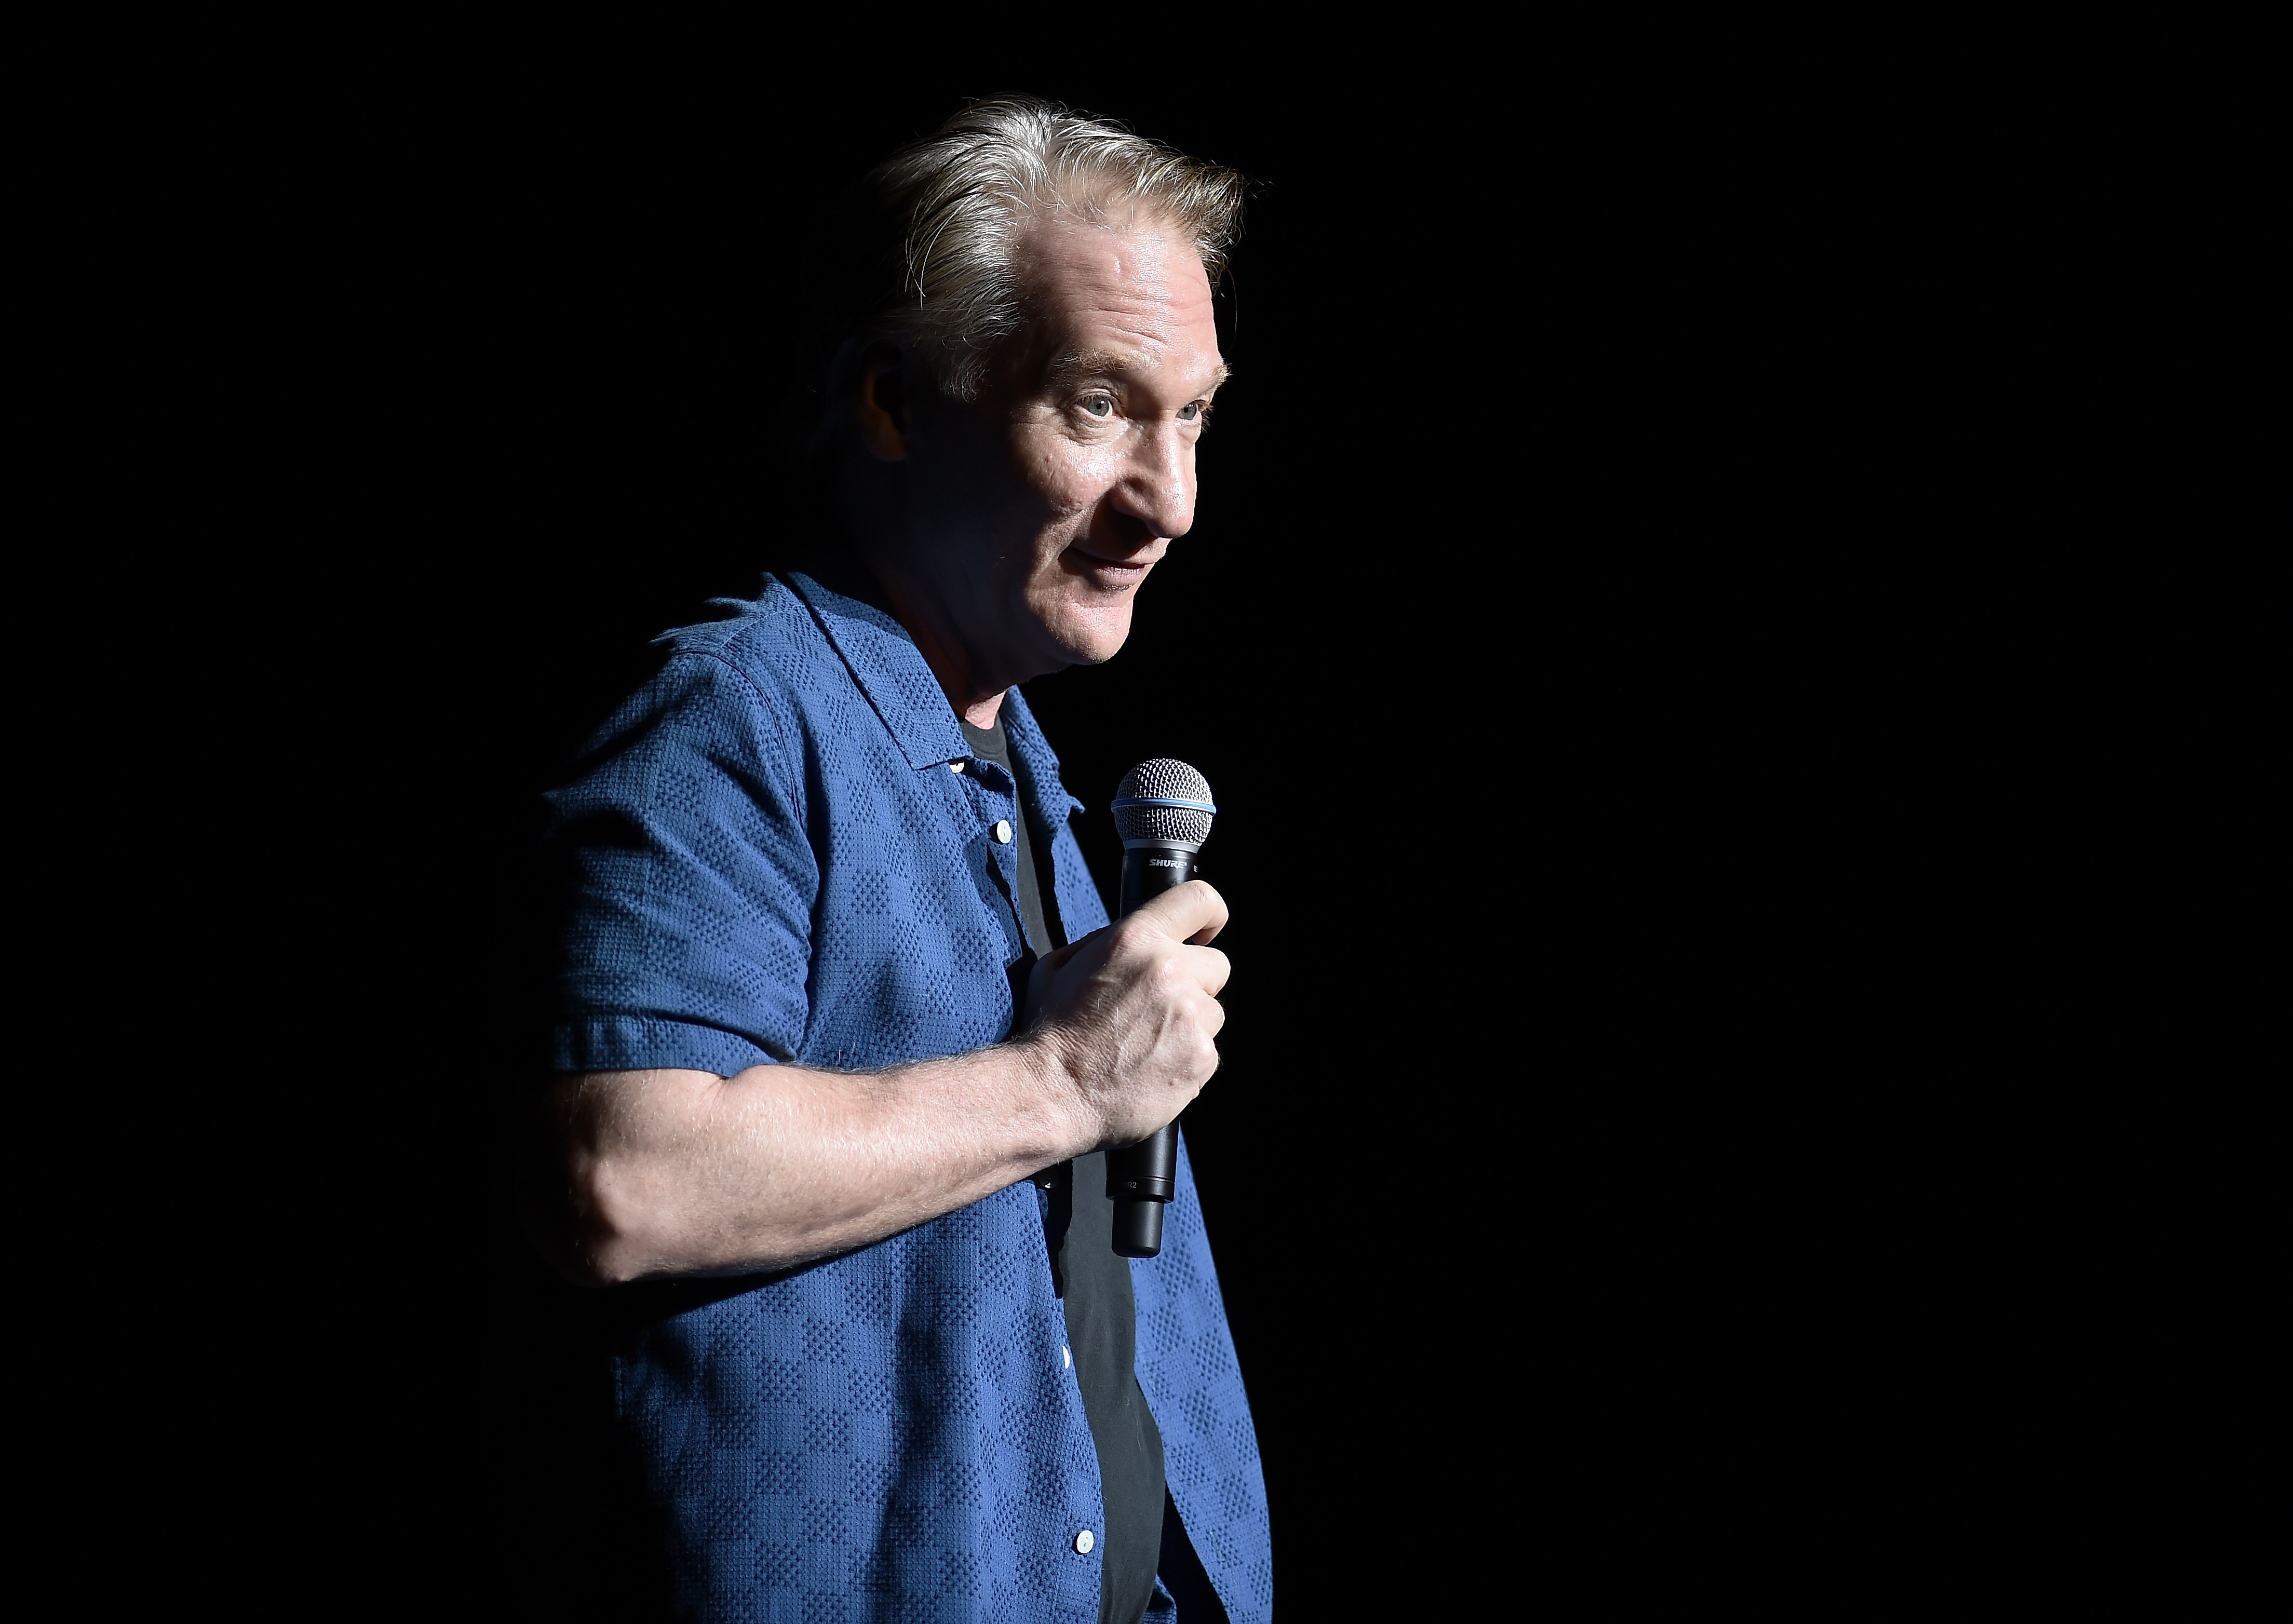 Bill Maher Performs During New York Comedy Festival at The Theater at Madison Square Garden on Nov. 5, 2016 in New York City.